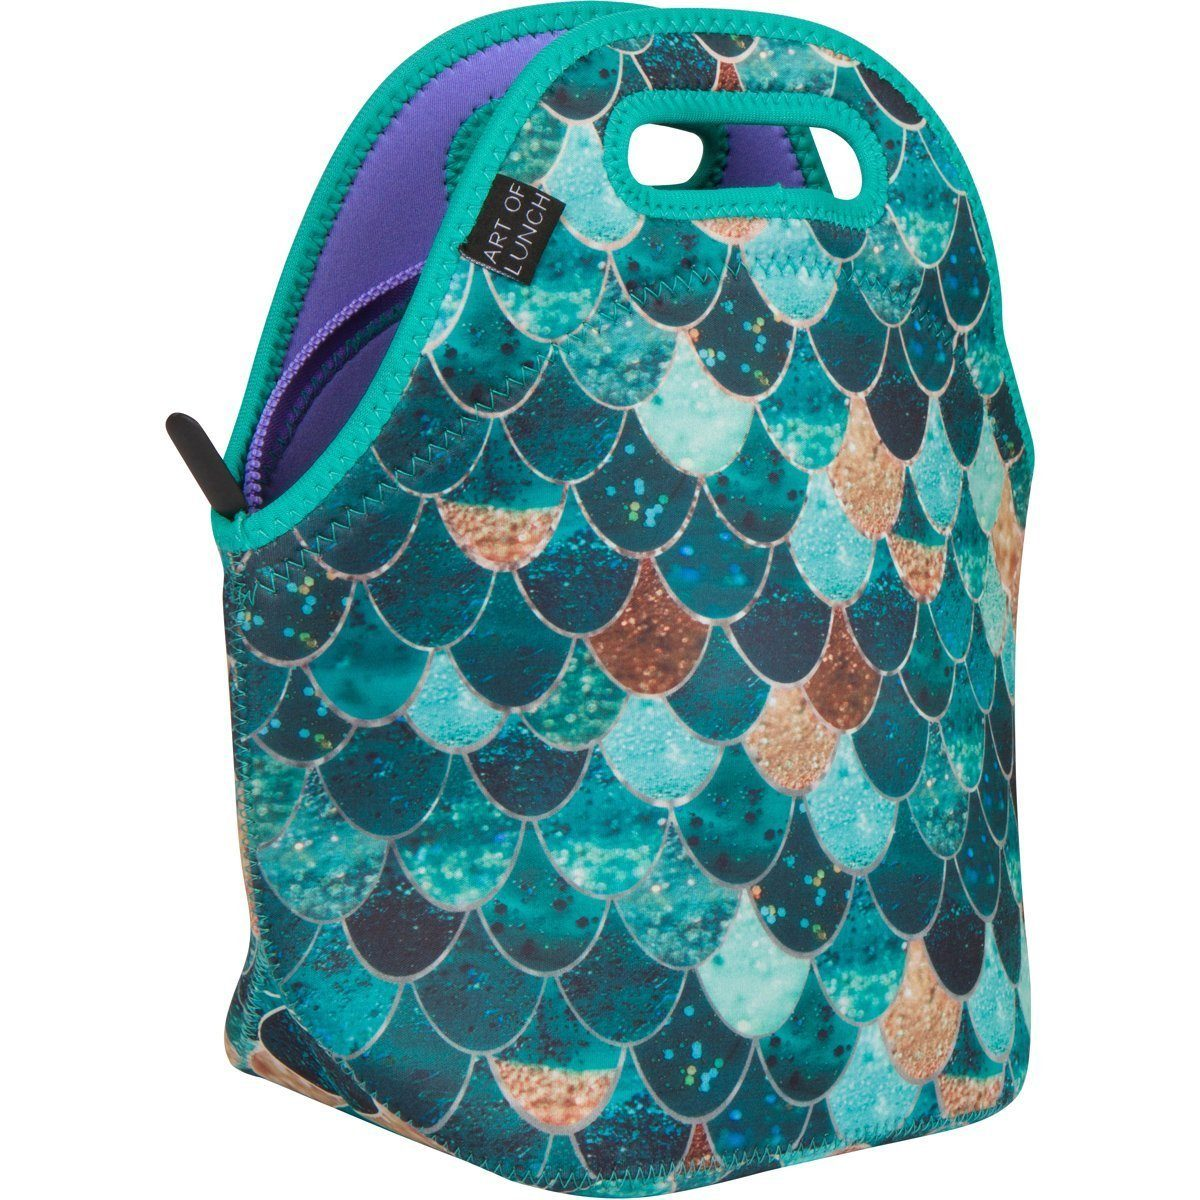 Mermaid Neoprene Lunch Bag